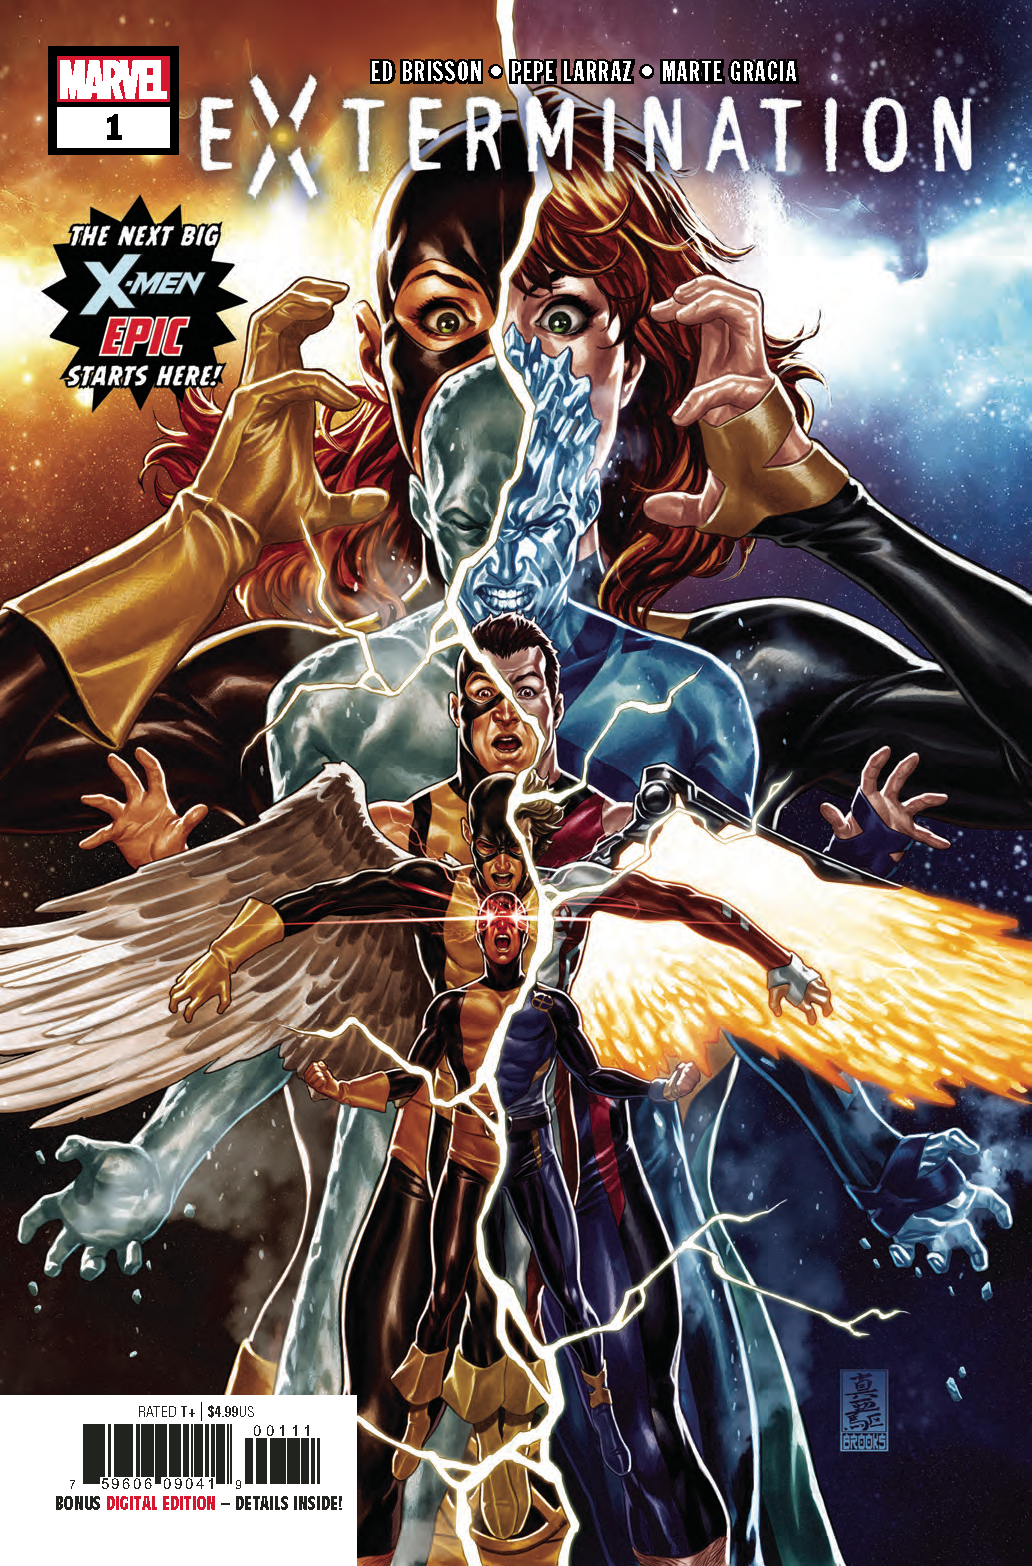 EXTERMINATION #1 (OF 5)